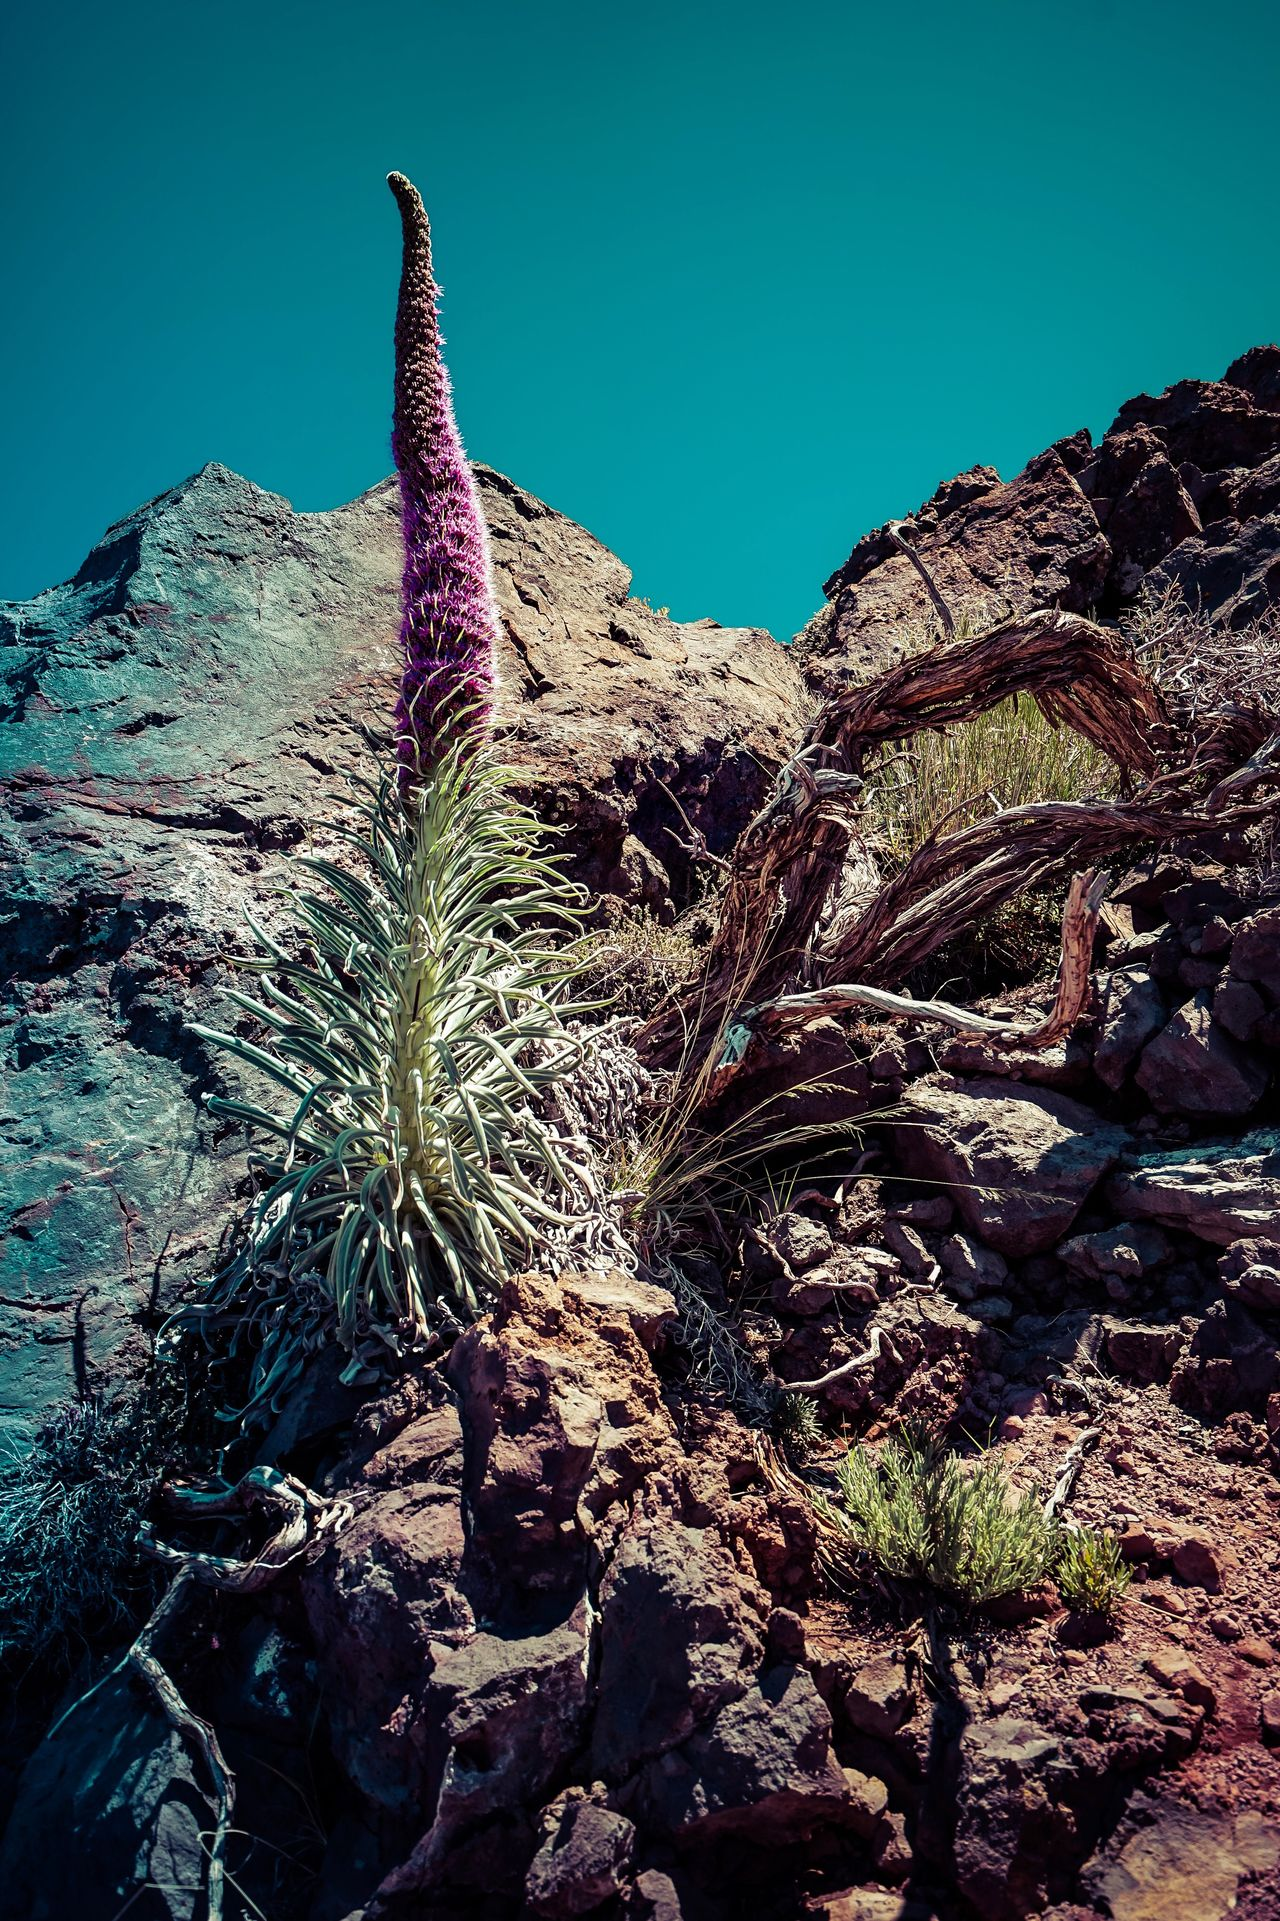 Echium wildpretii Nature Plant Growth Beauty In Nature No People Low Angle View Outdoors Mountain Tranquility Day Clear Sky Arid Climate Flower Desert Volcano Travel Destinations Canary Islands Isla De La Palma Tropical Climate Location Photography Travel Photographer